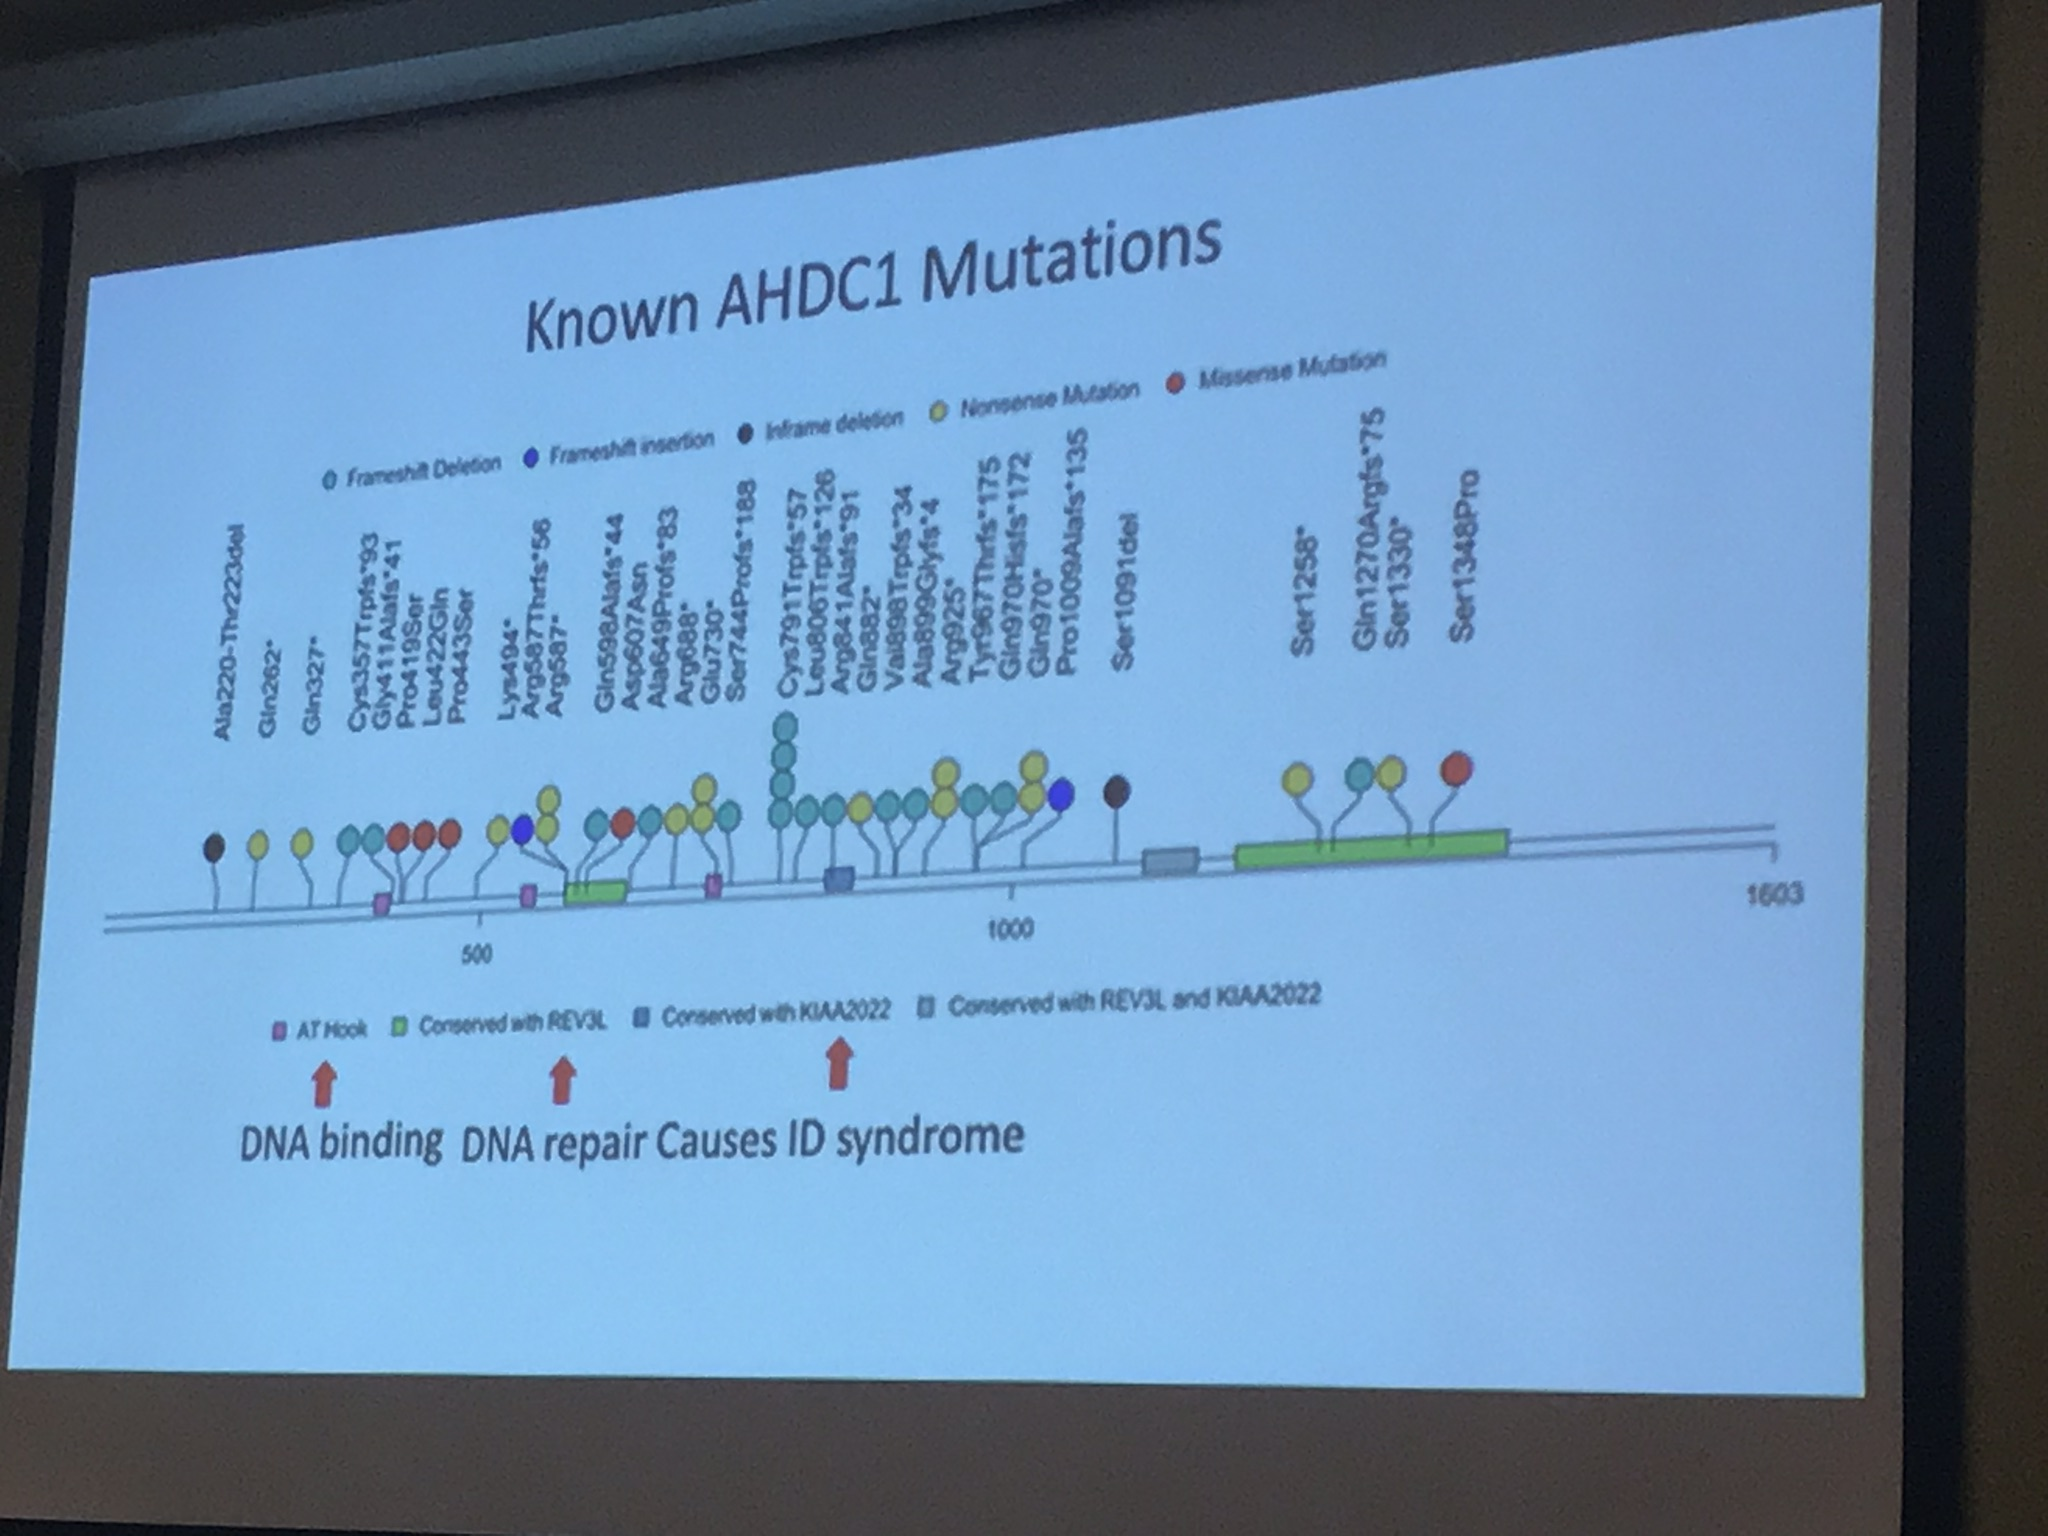 Slide showing information on AHDC1 mutations